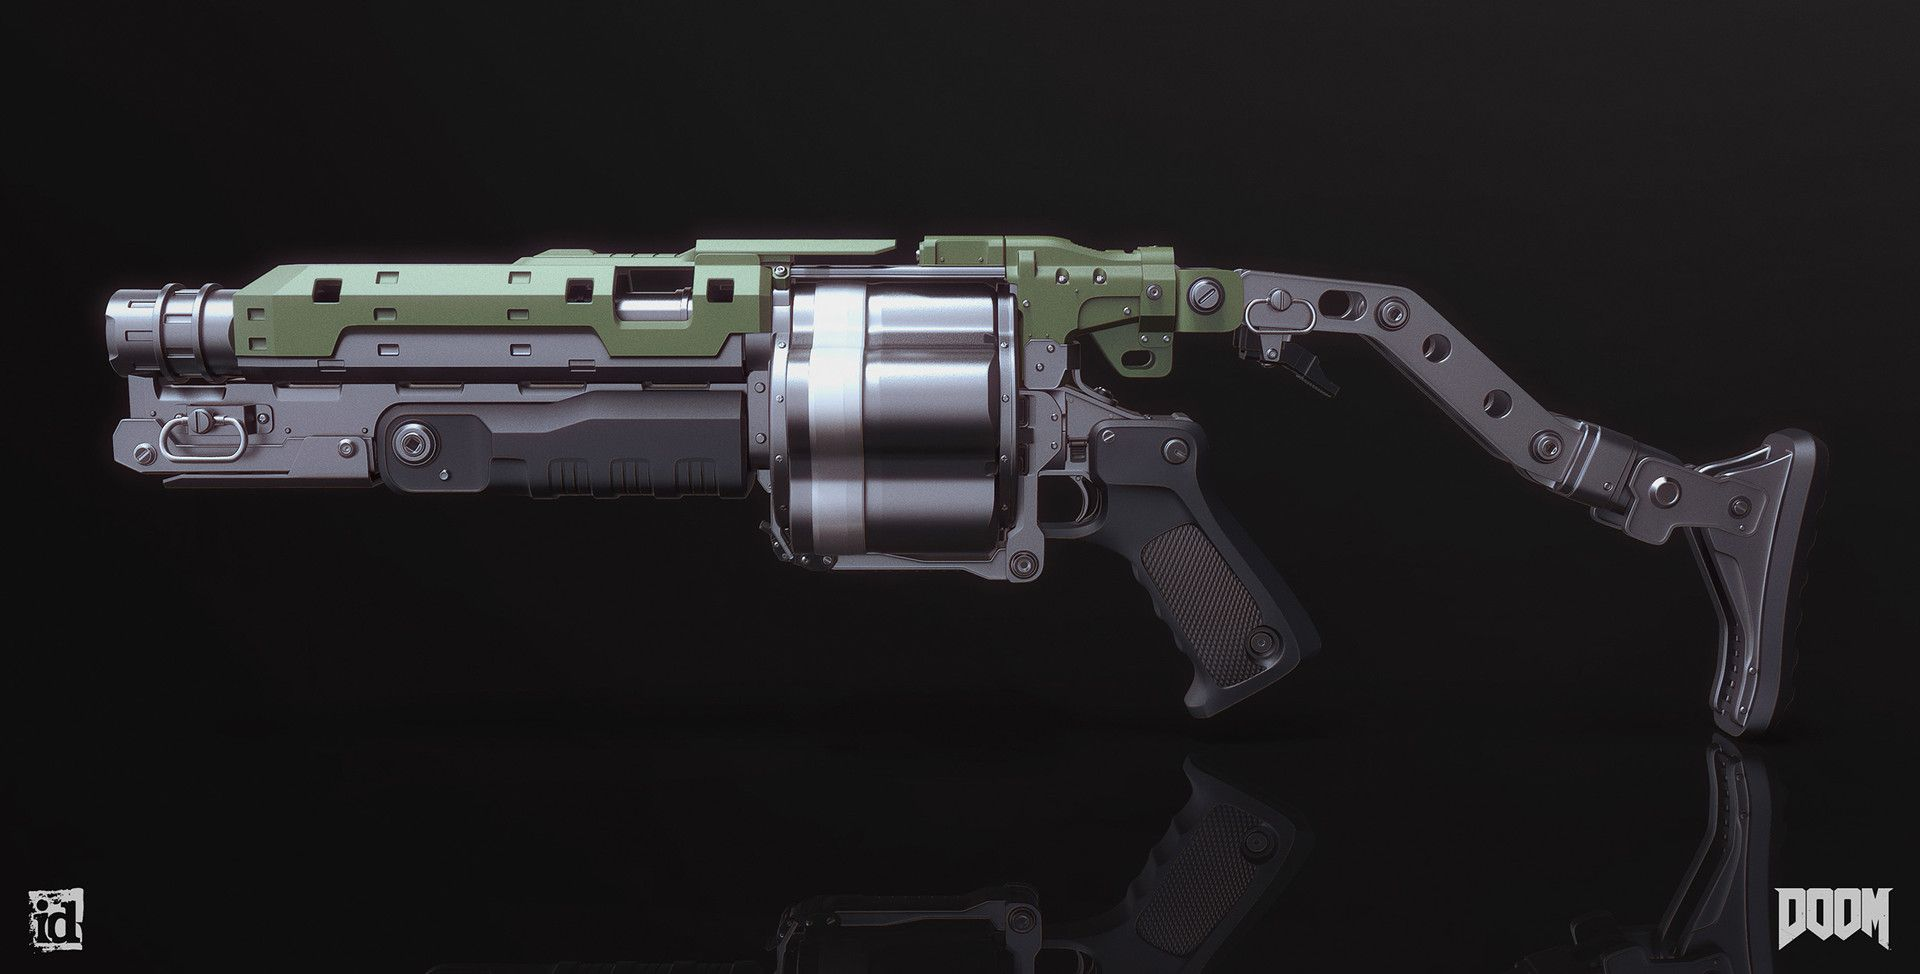 Pin by Kimry on Concept art | Concept weapons, Weapons guns